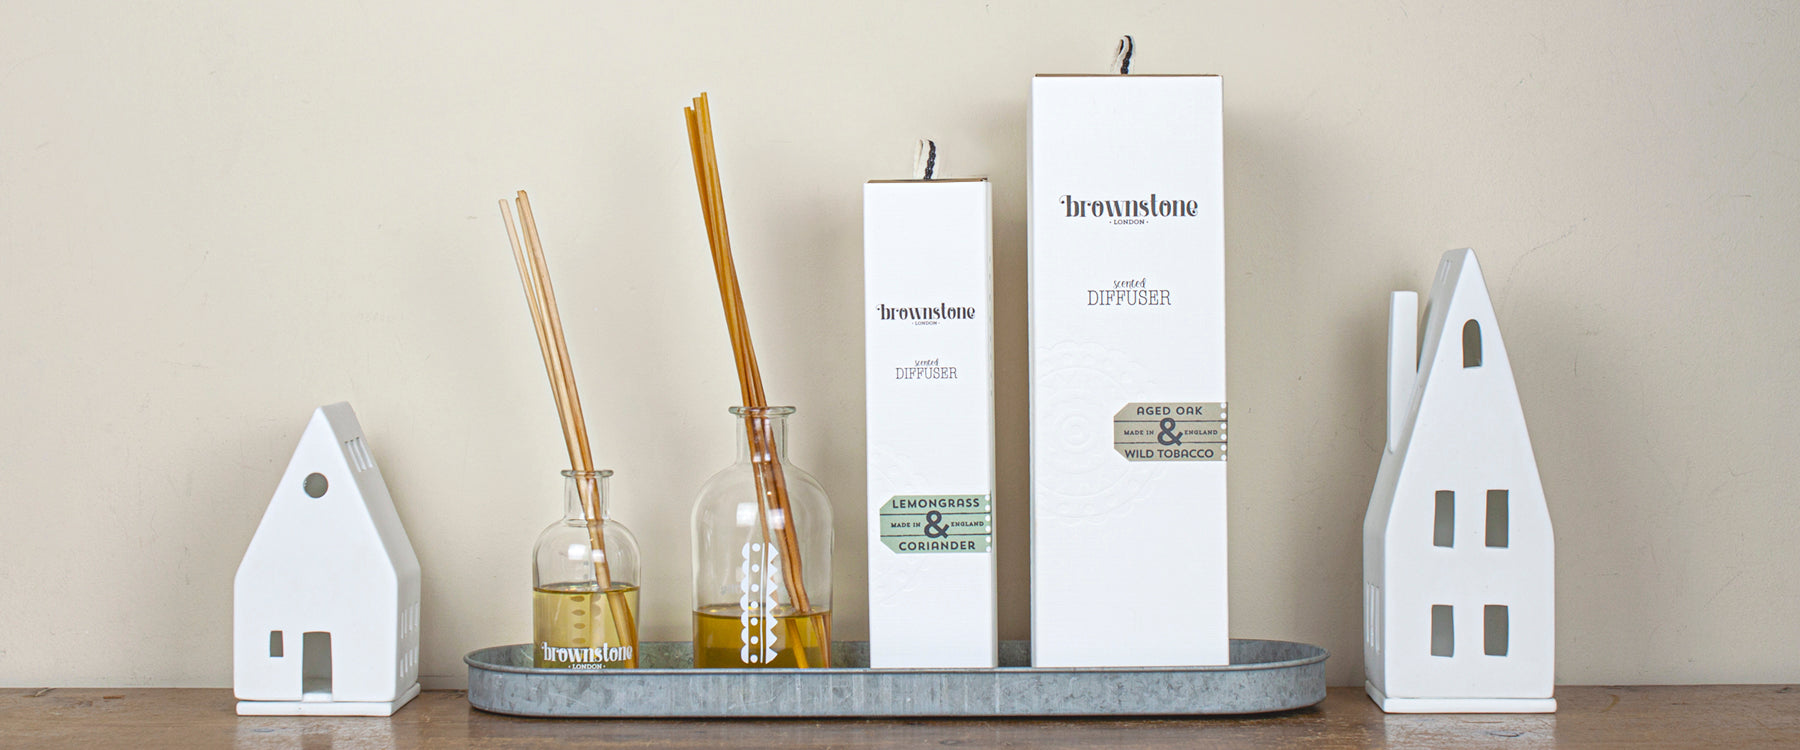 brownstone diffuser collection